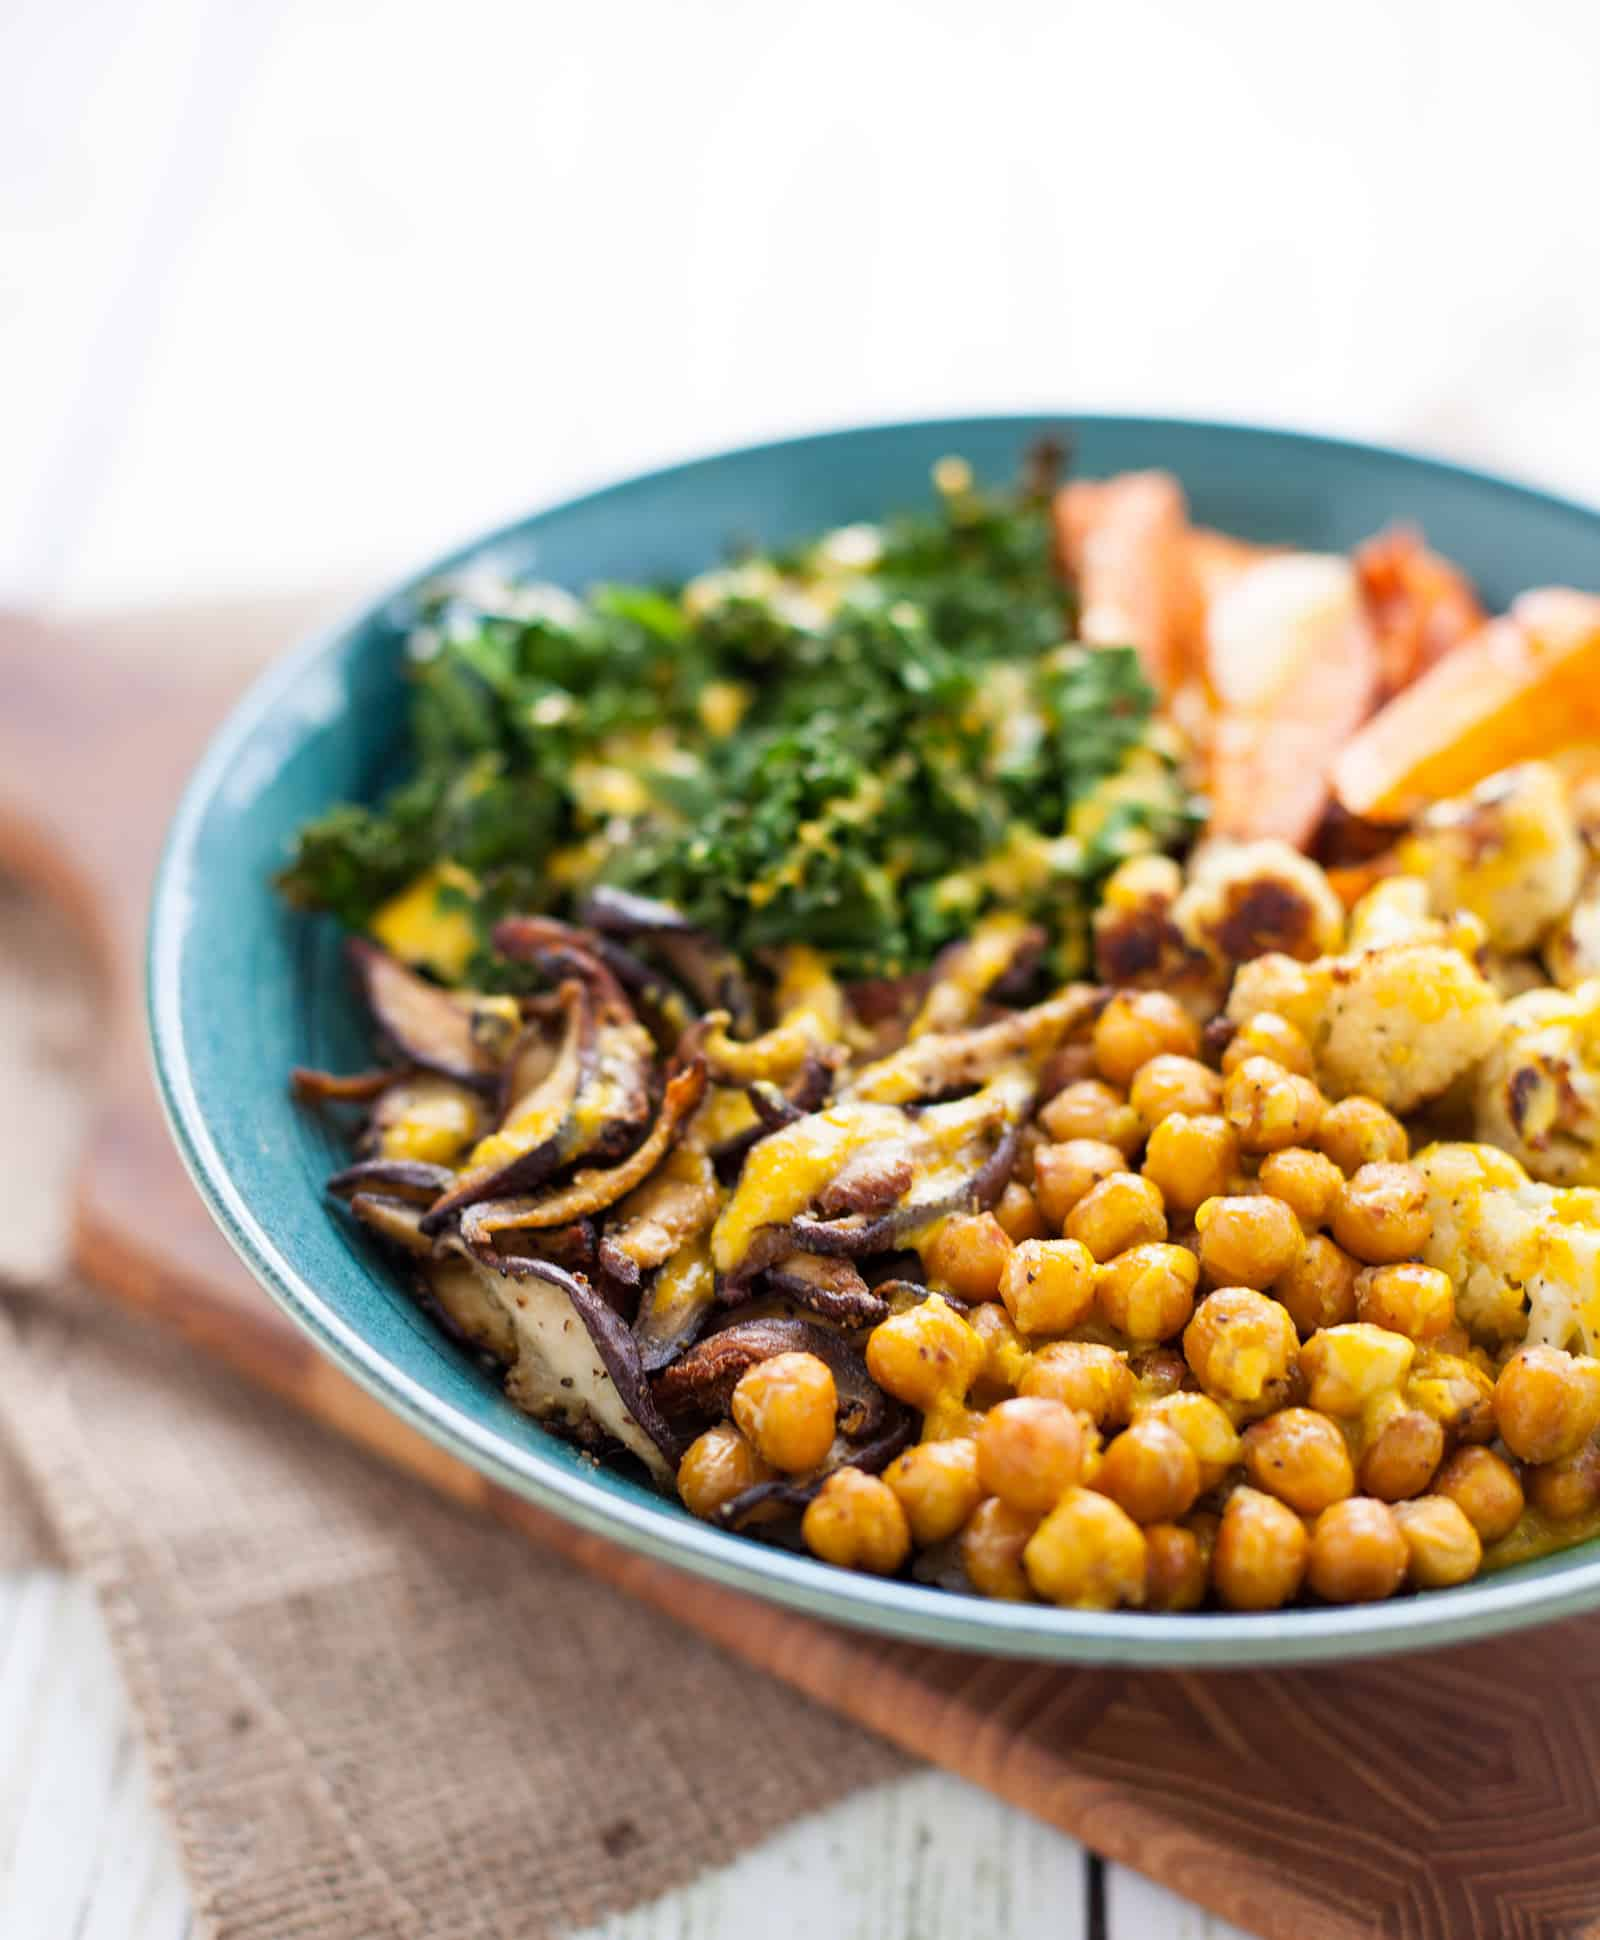 Nourish Your Namaste: How Nutrition and Yoga Can Support